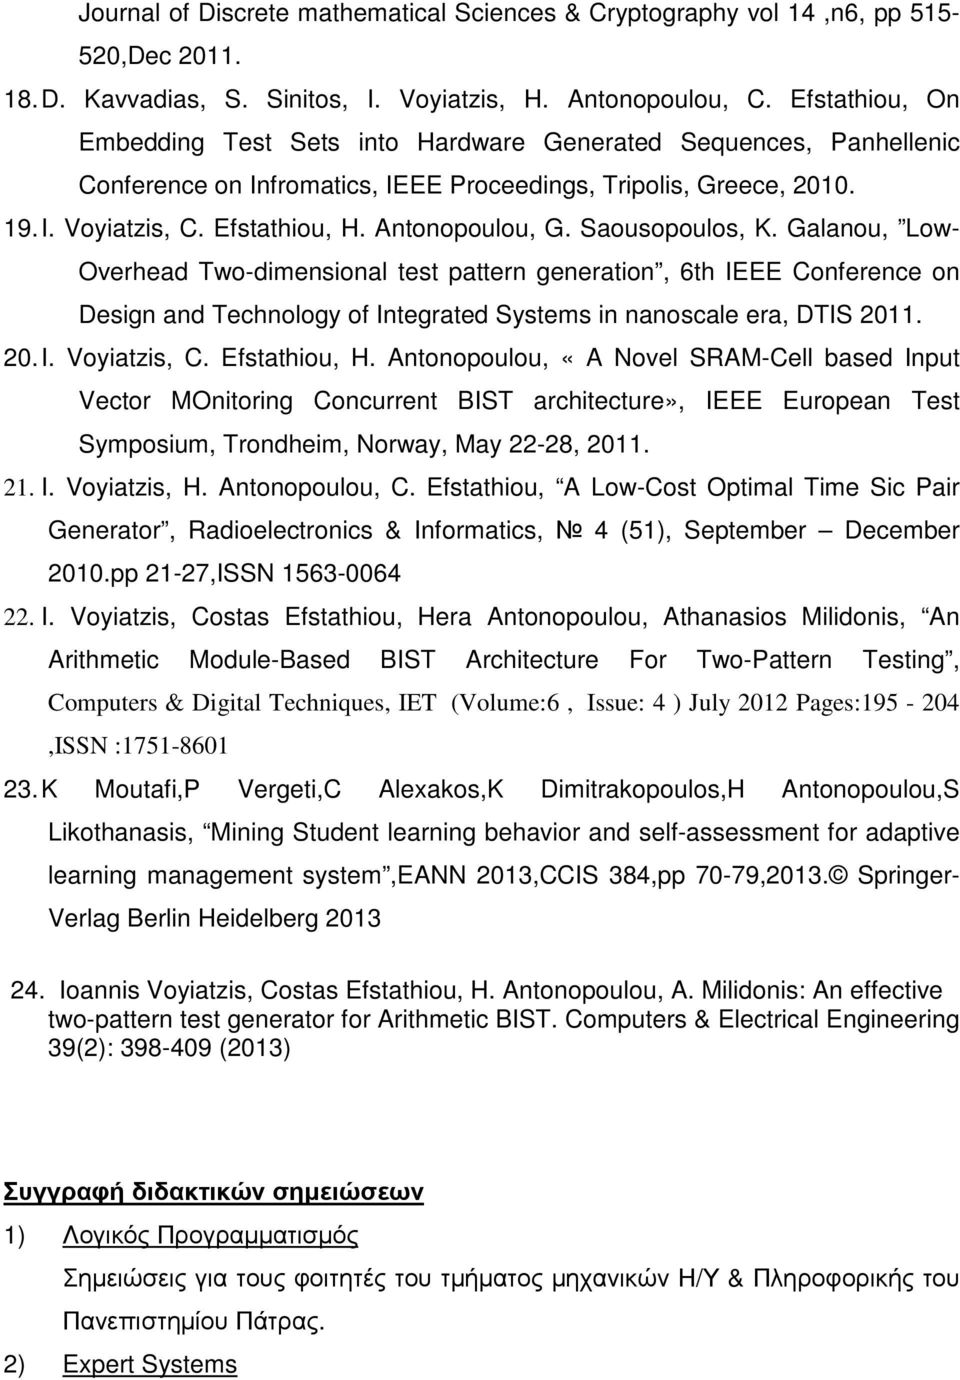 Antonopoulou, G. Saousopoulos, K. Galanou, Low- Overhead Two-dimensional test pattern generation, 6th IEEE Conference on Design and Technology of Integrated Systems in nanoscale era, DTIS 2011. 20. I. Voyiatzis, C.